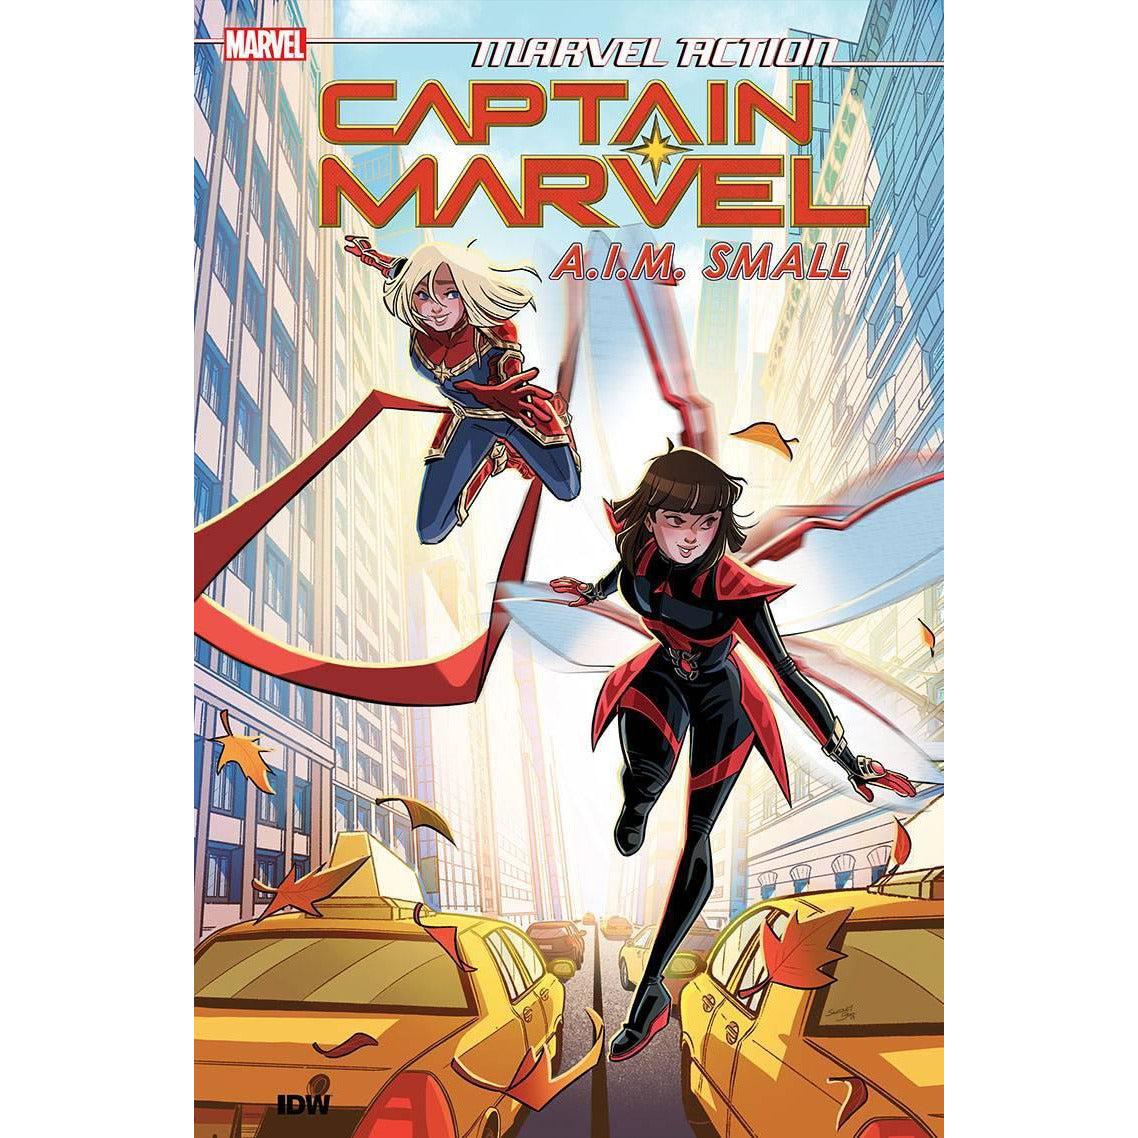 MARVEL ACTION CAPTAIN MARVEL VOLUME 02 AIM SMALL